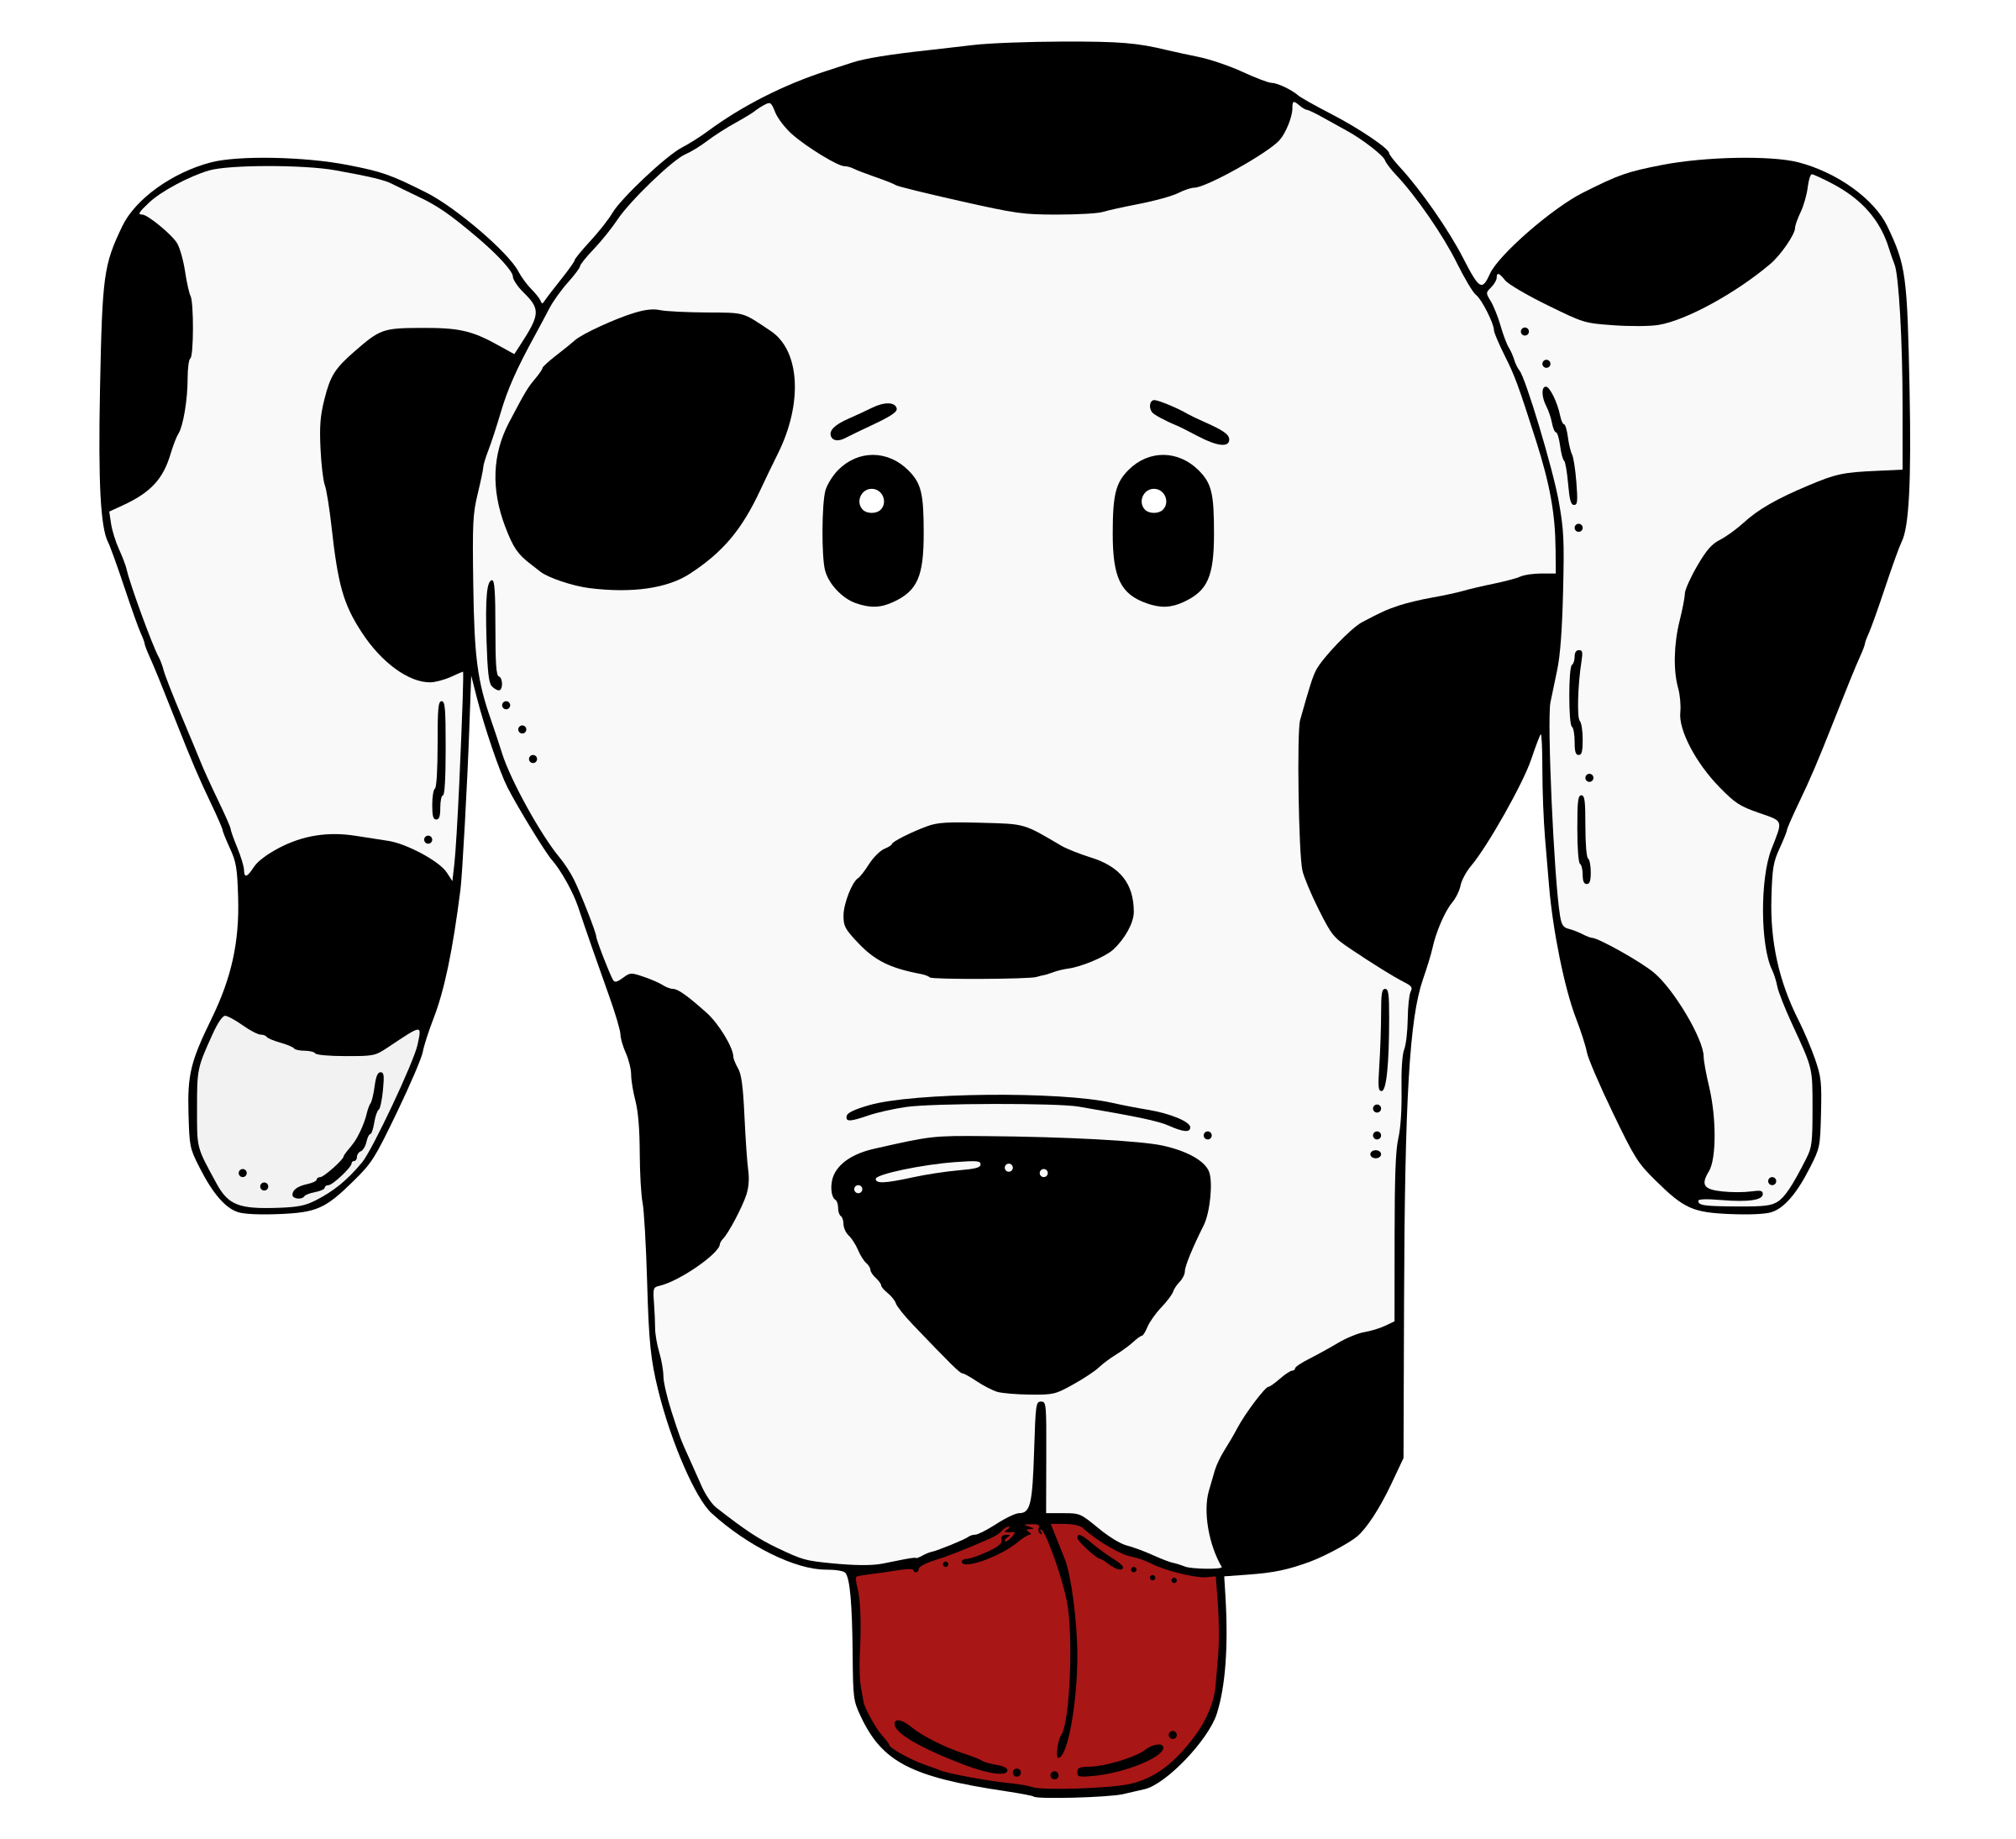 Dogs clipart head. Spotty dog big image